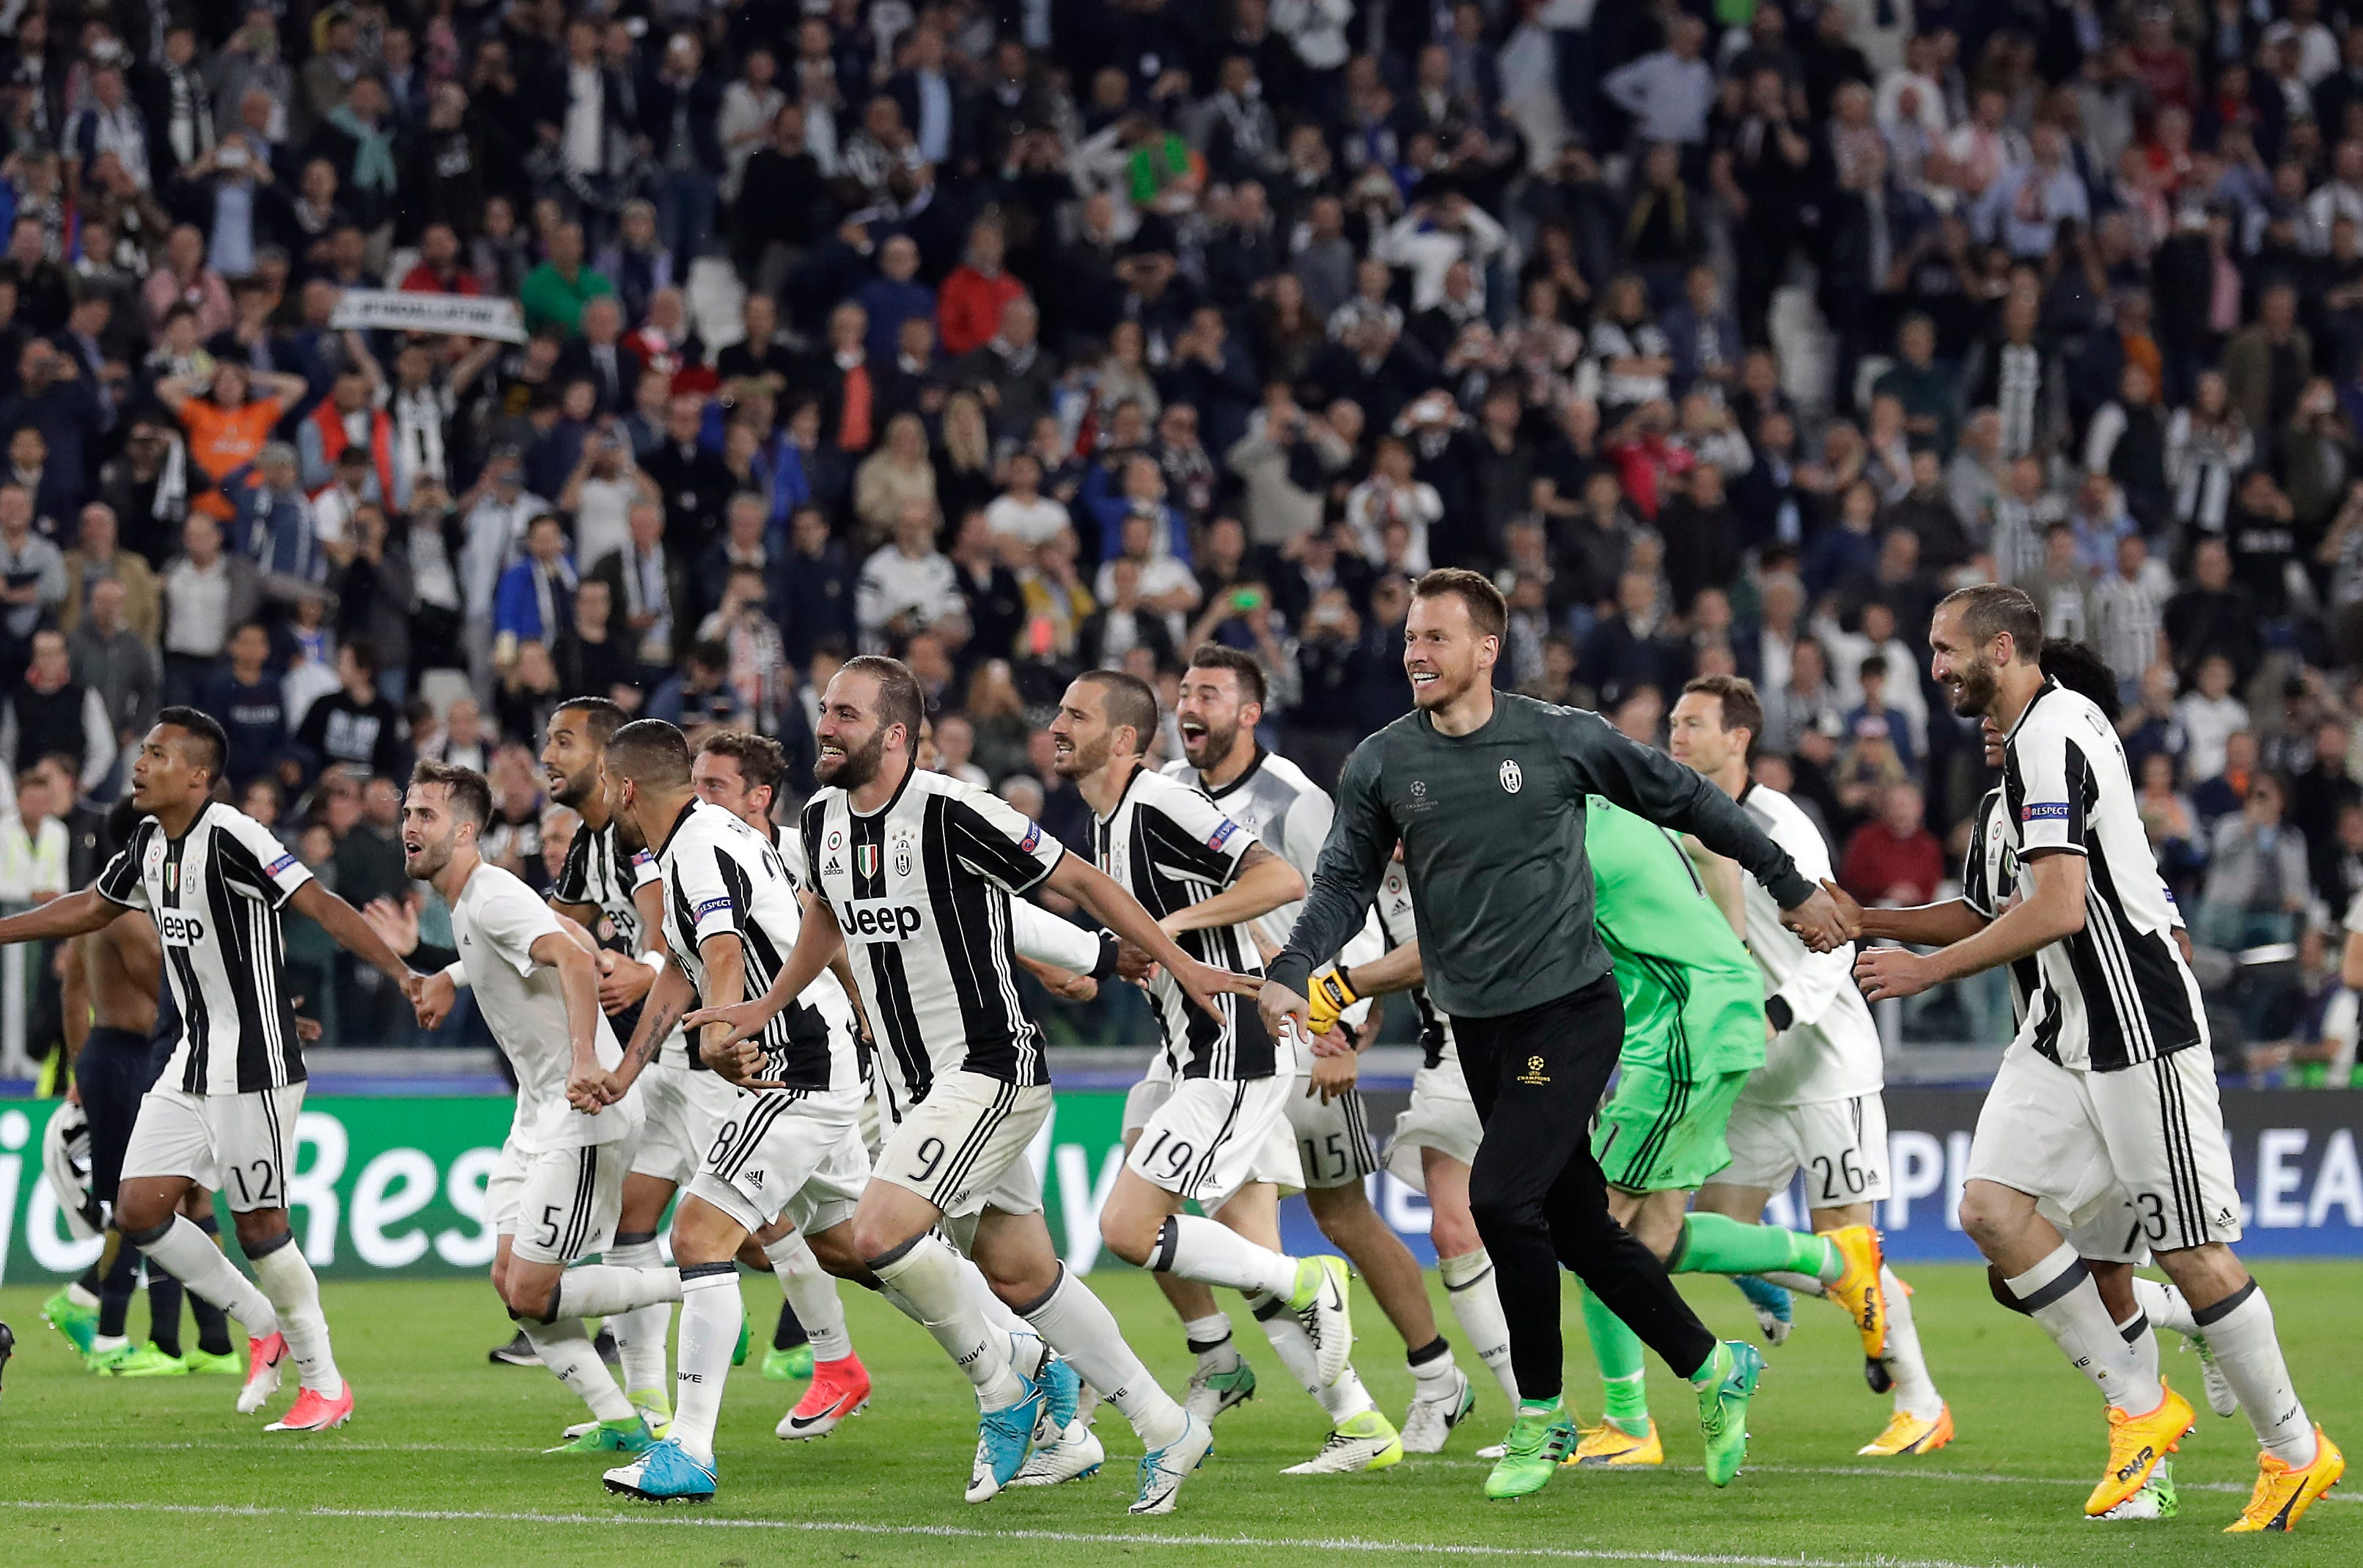 How Juventus claimed its 6th straight Serie A title